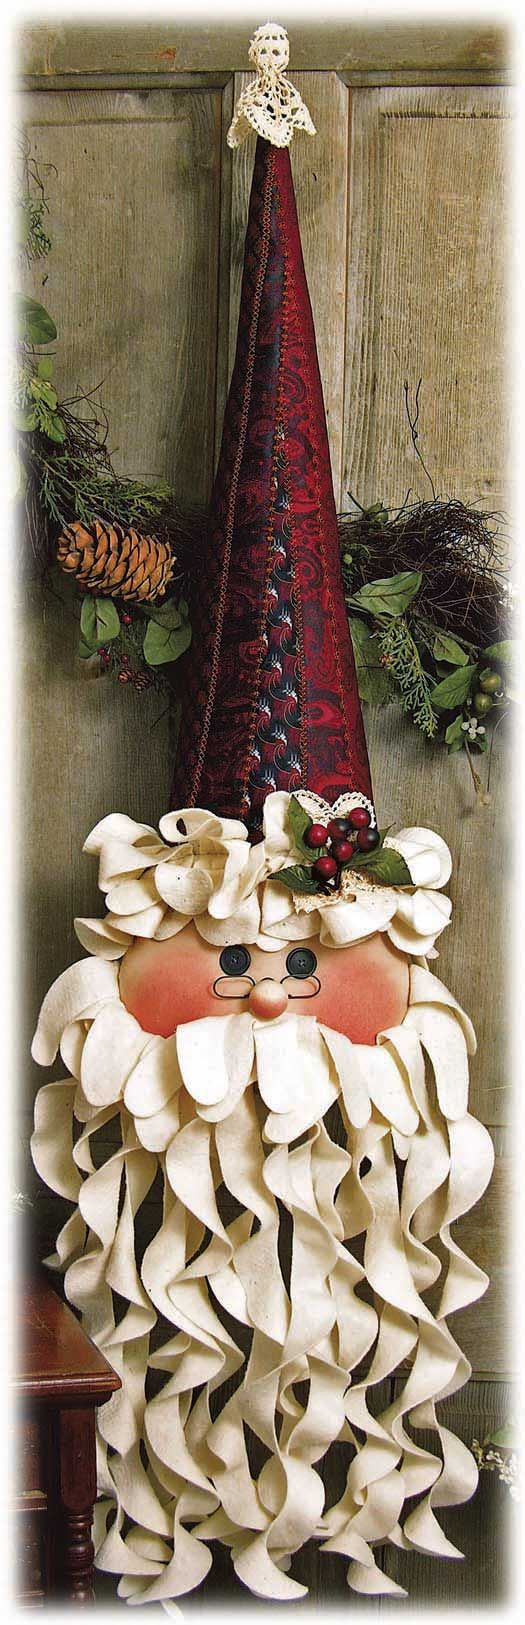 Yuletide Santa Ornament